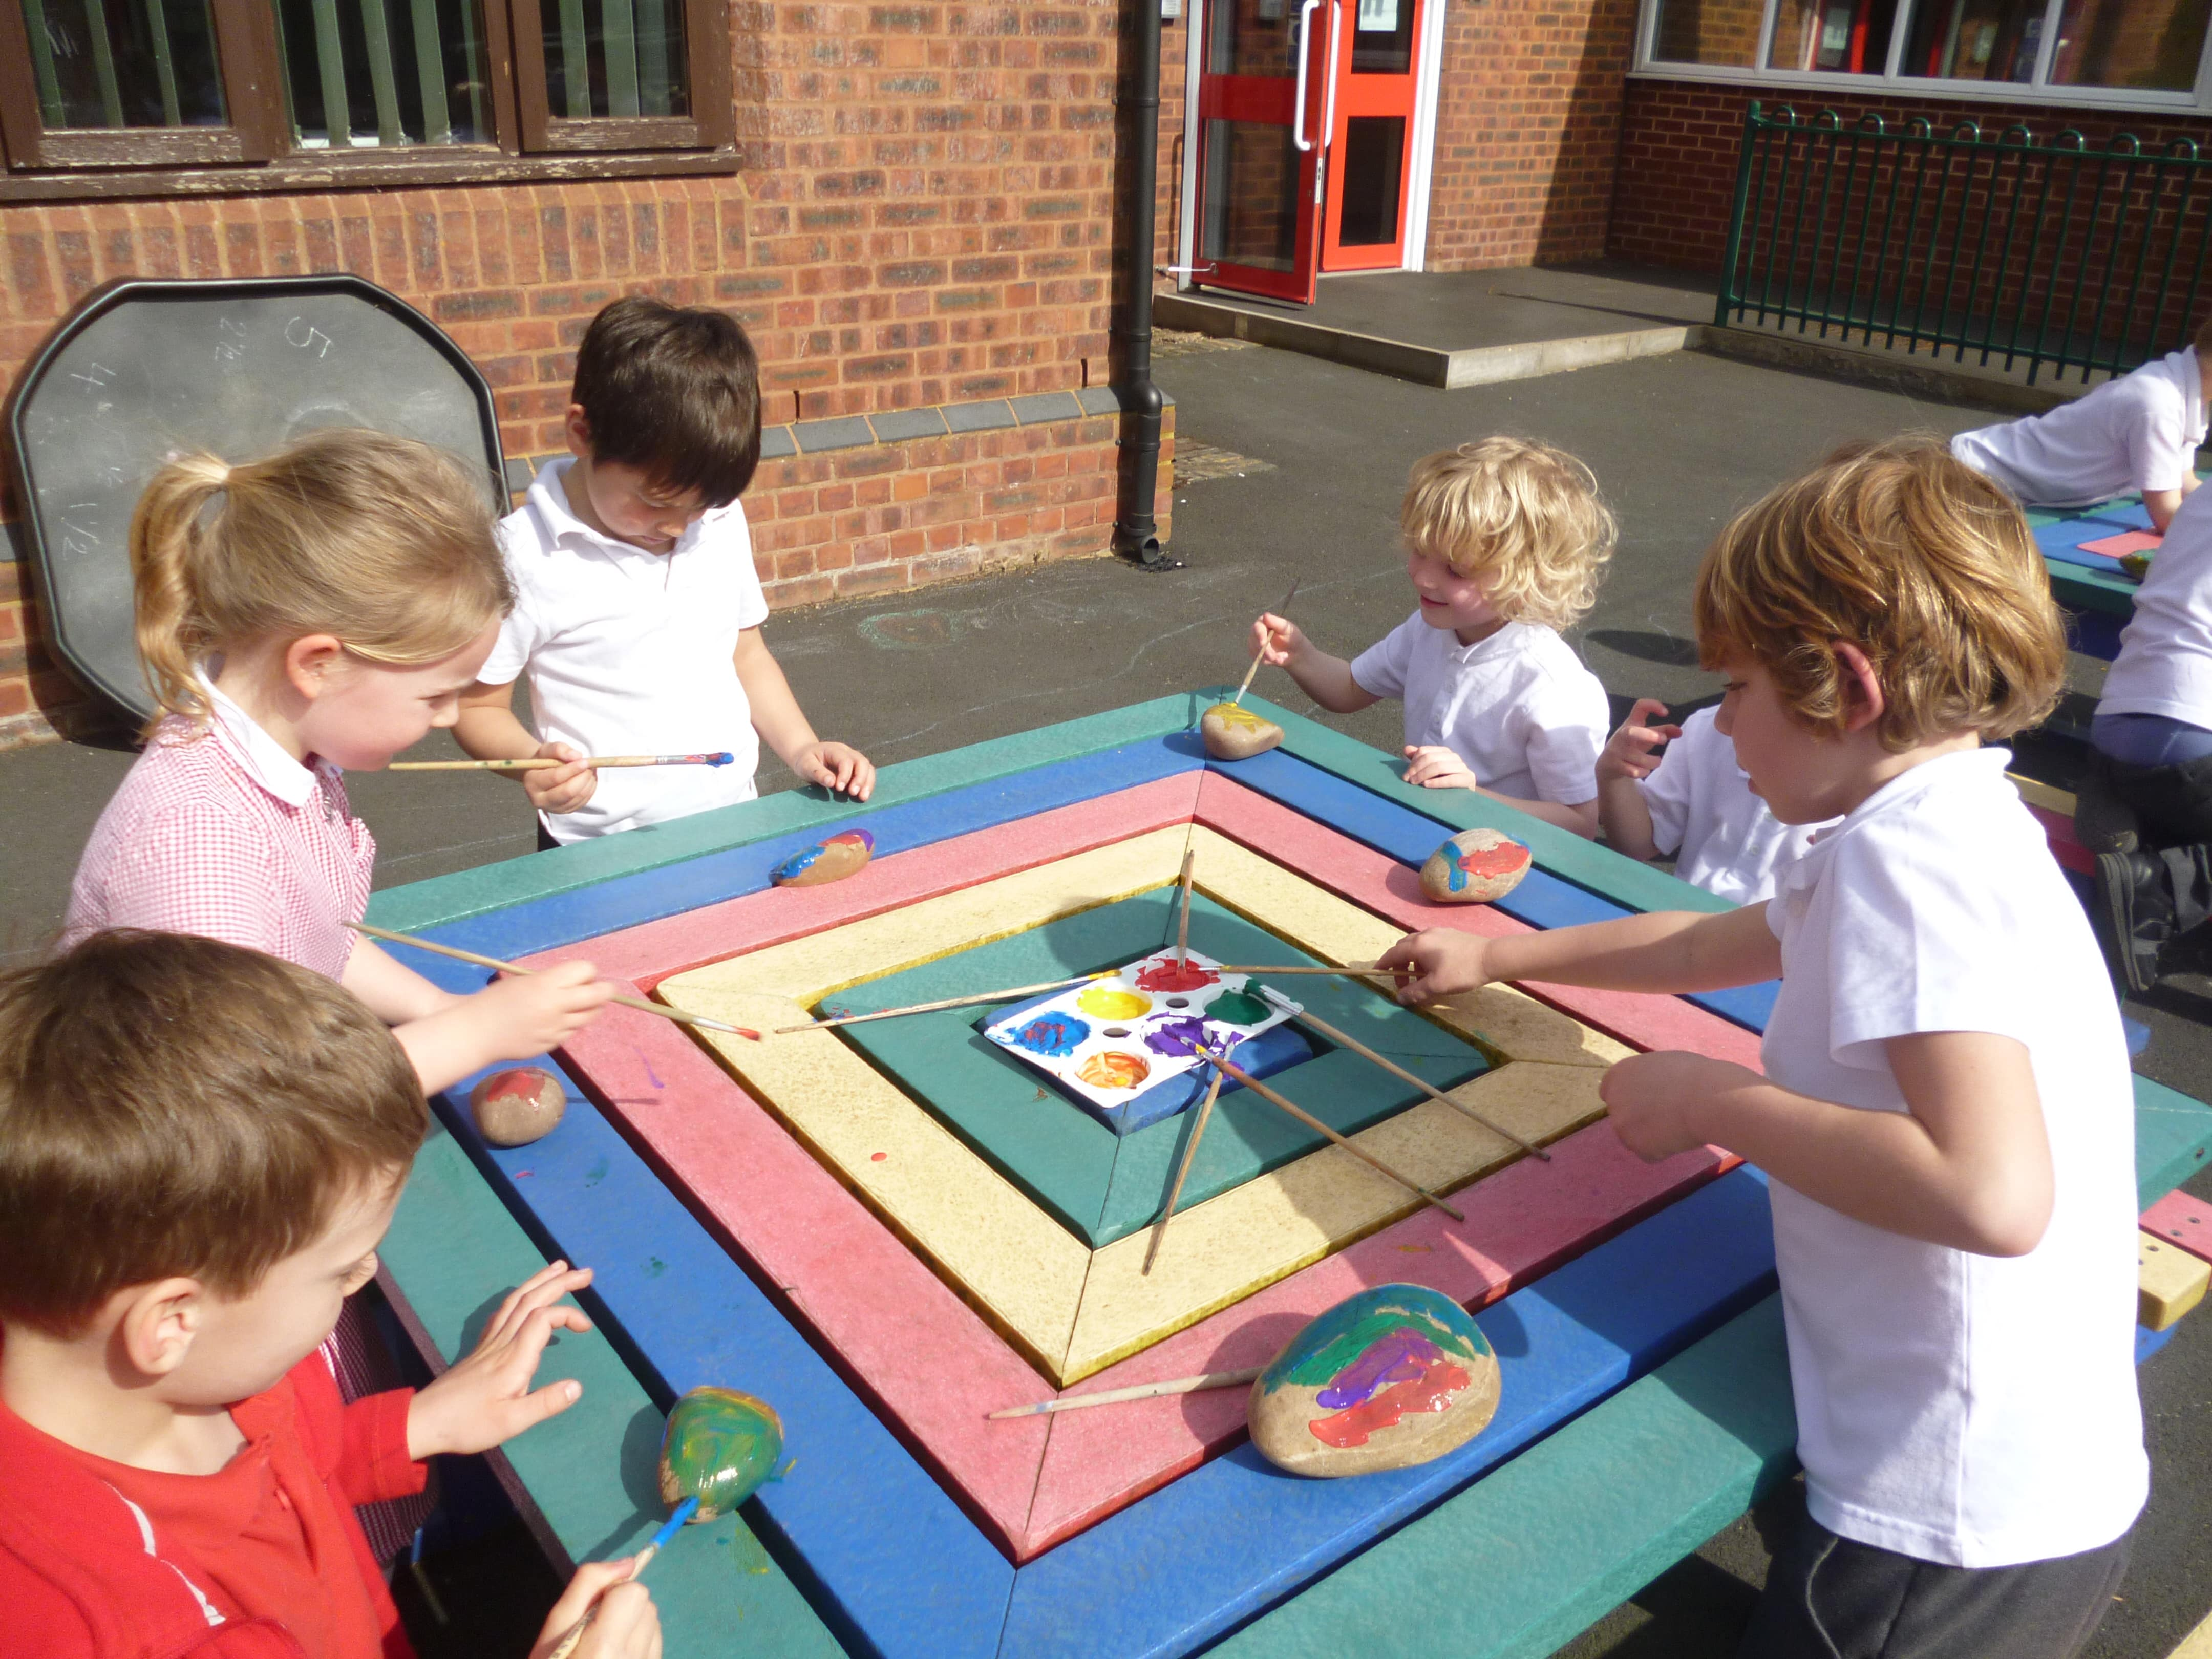 Year 2 pupils at the Richard Clarke First school